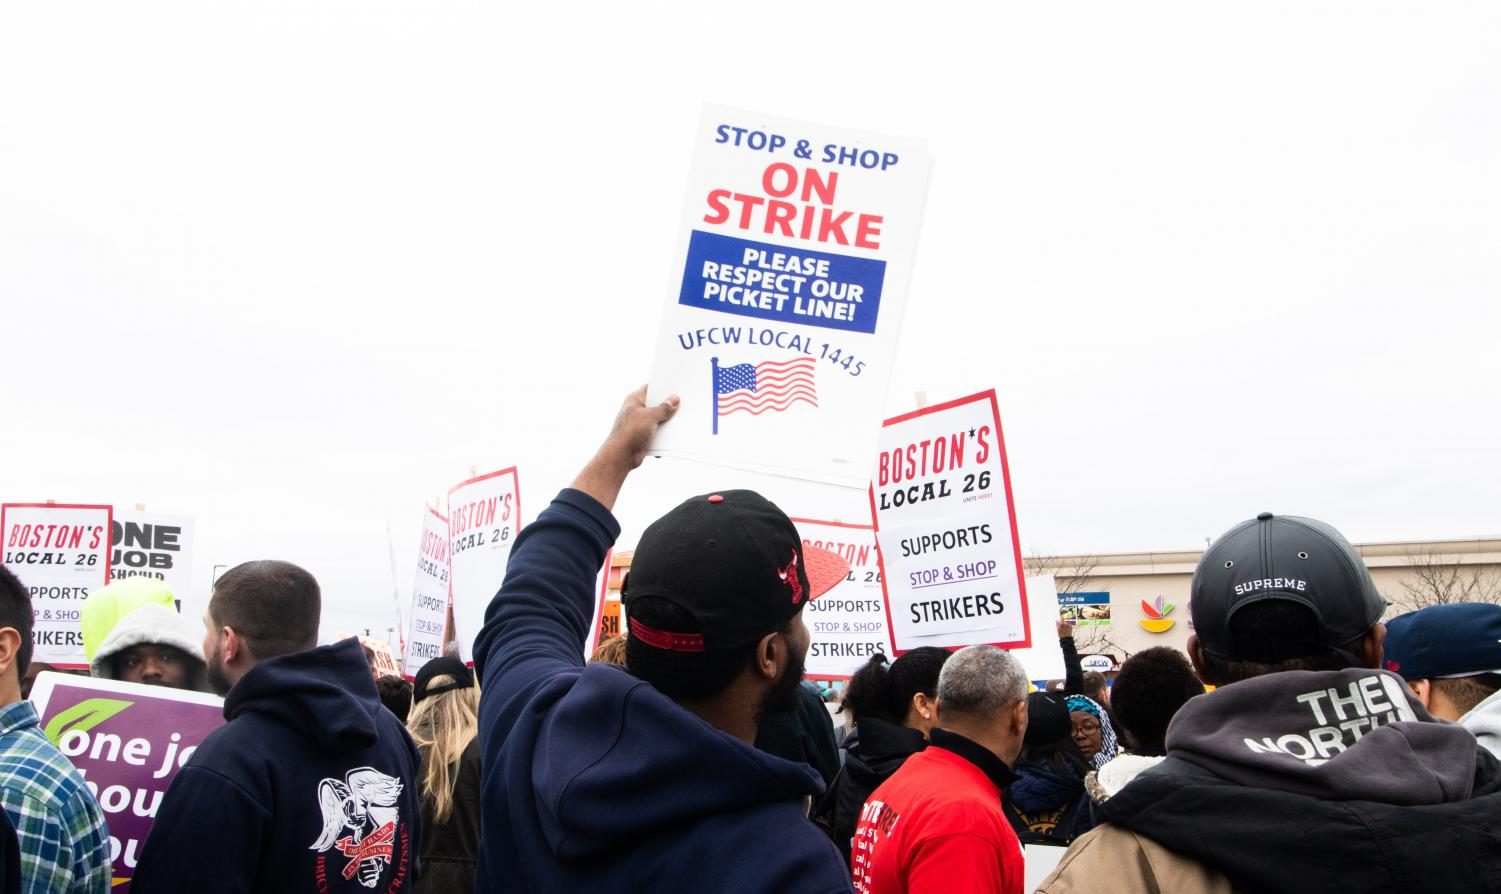 Strikers+hold+up+signs+at+the+rally+in+front+of+the+Dorchester+Stop+%26+Shop+on+April+18.